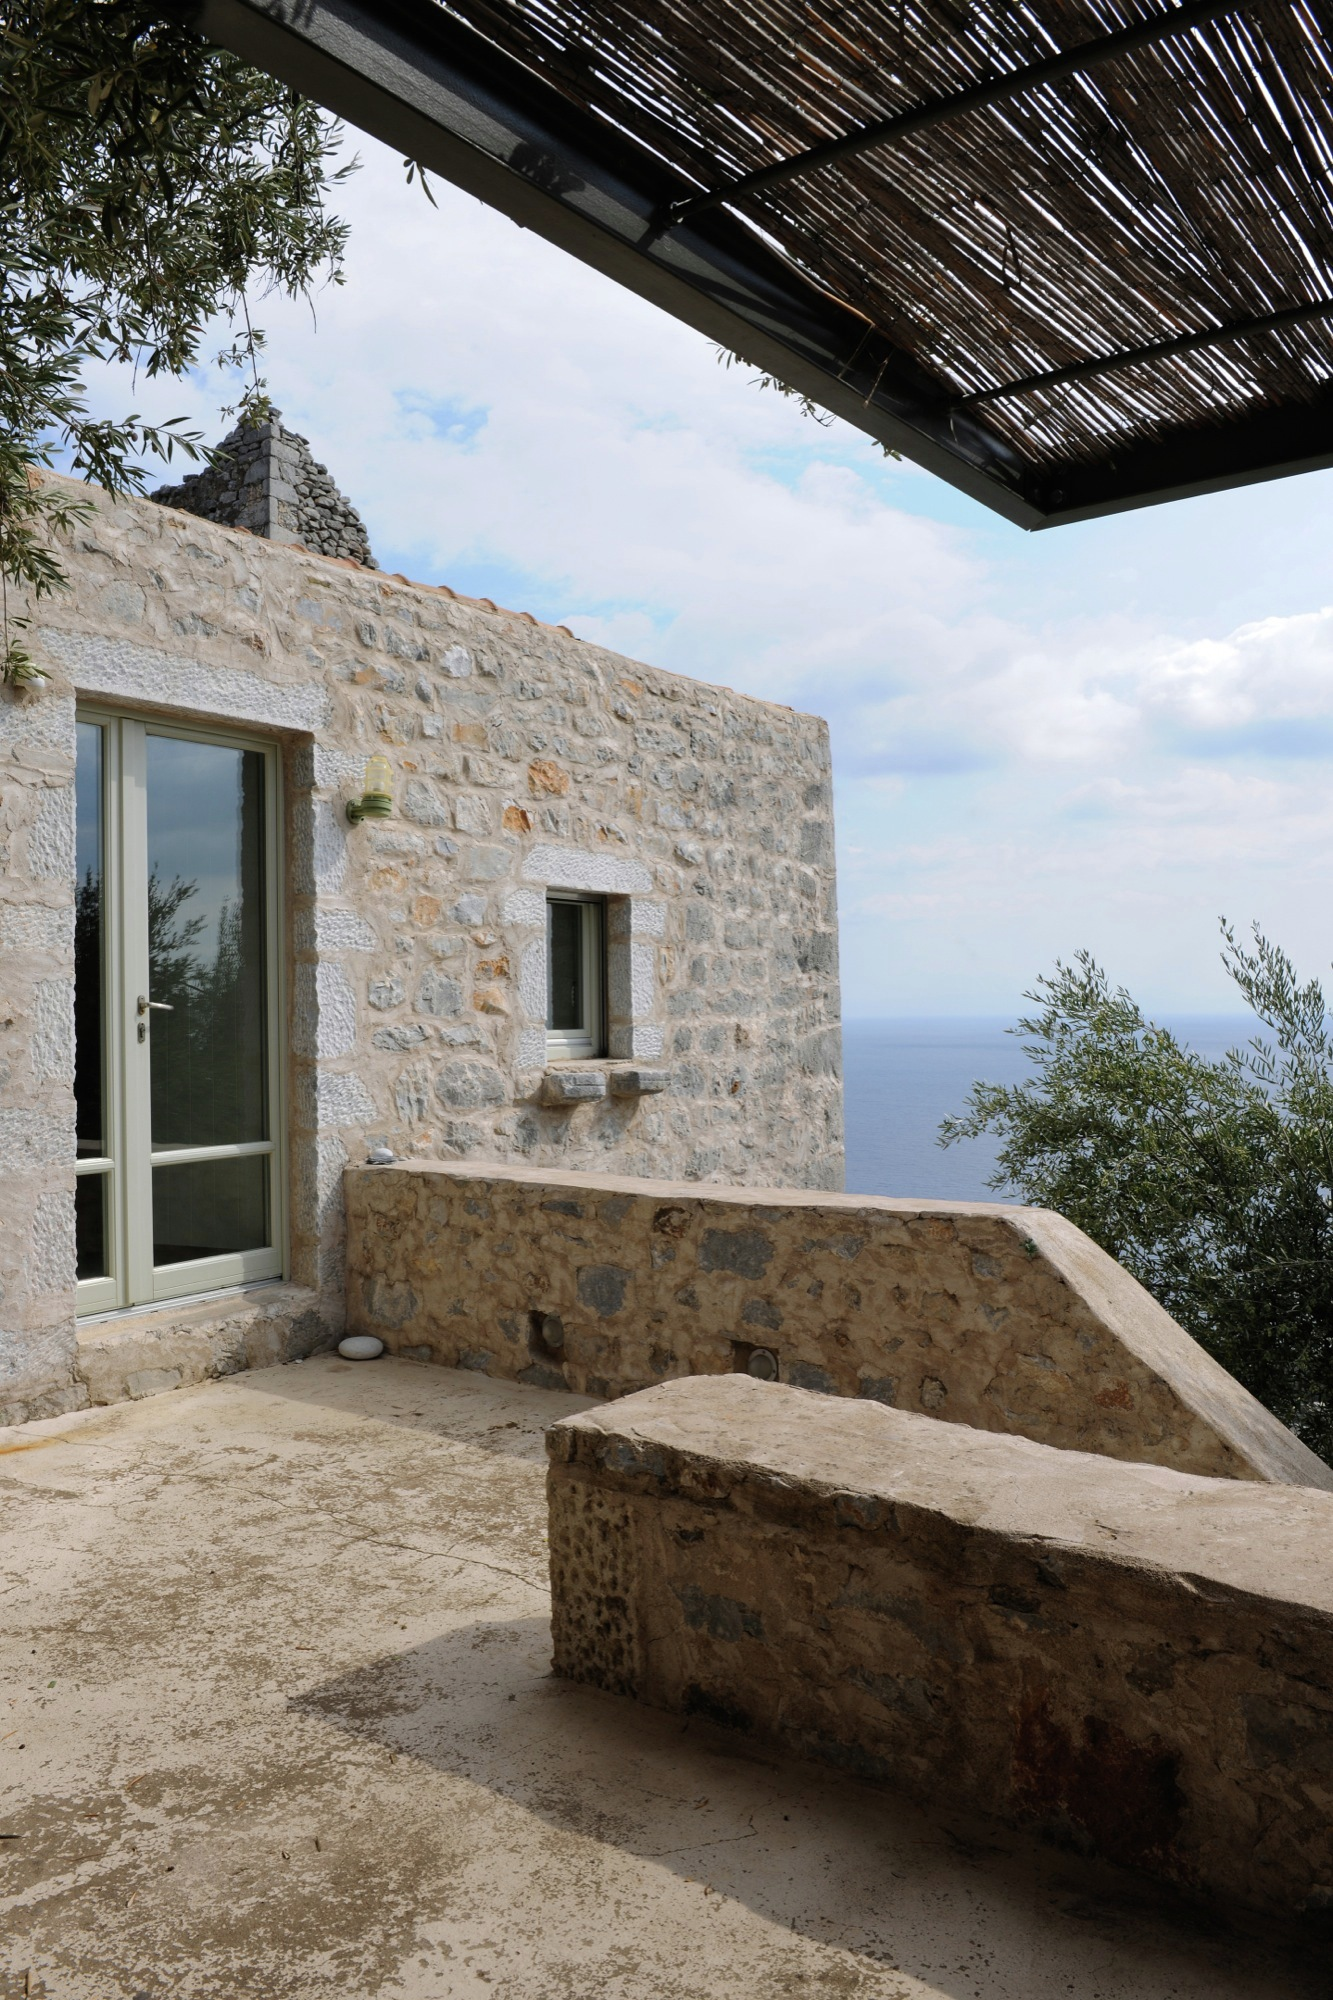 Tower holiday house in Greece exterior stone walls